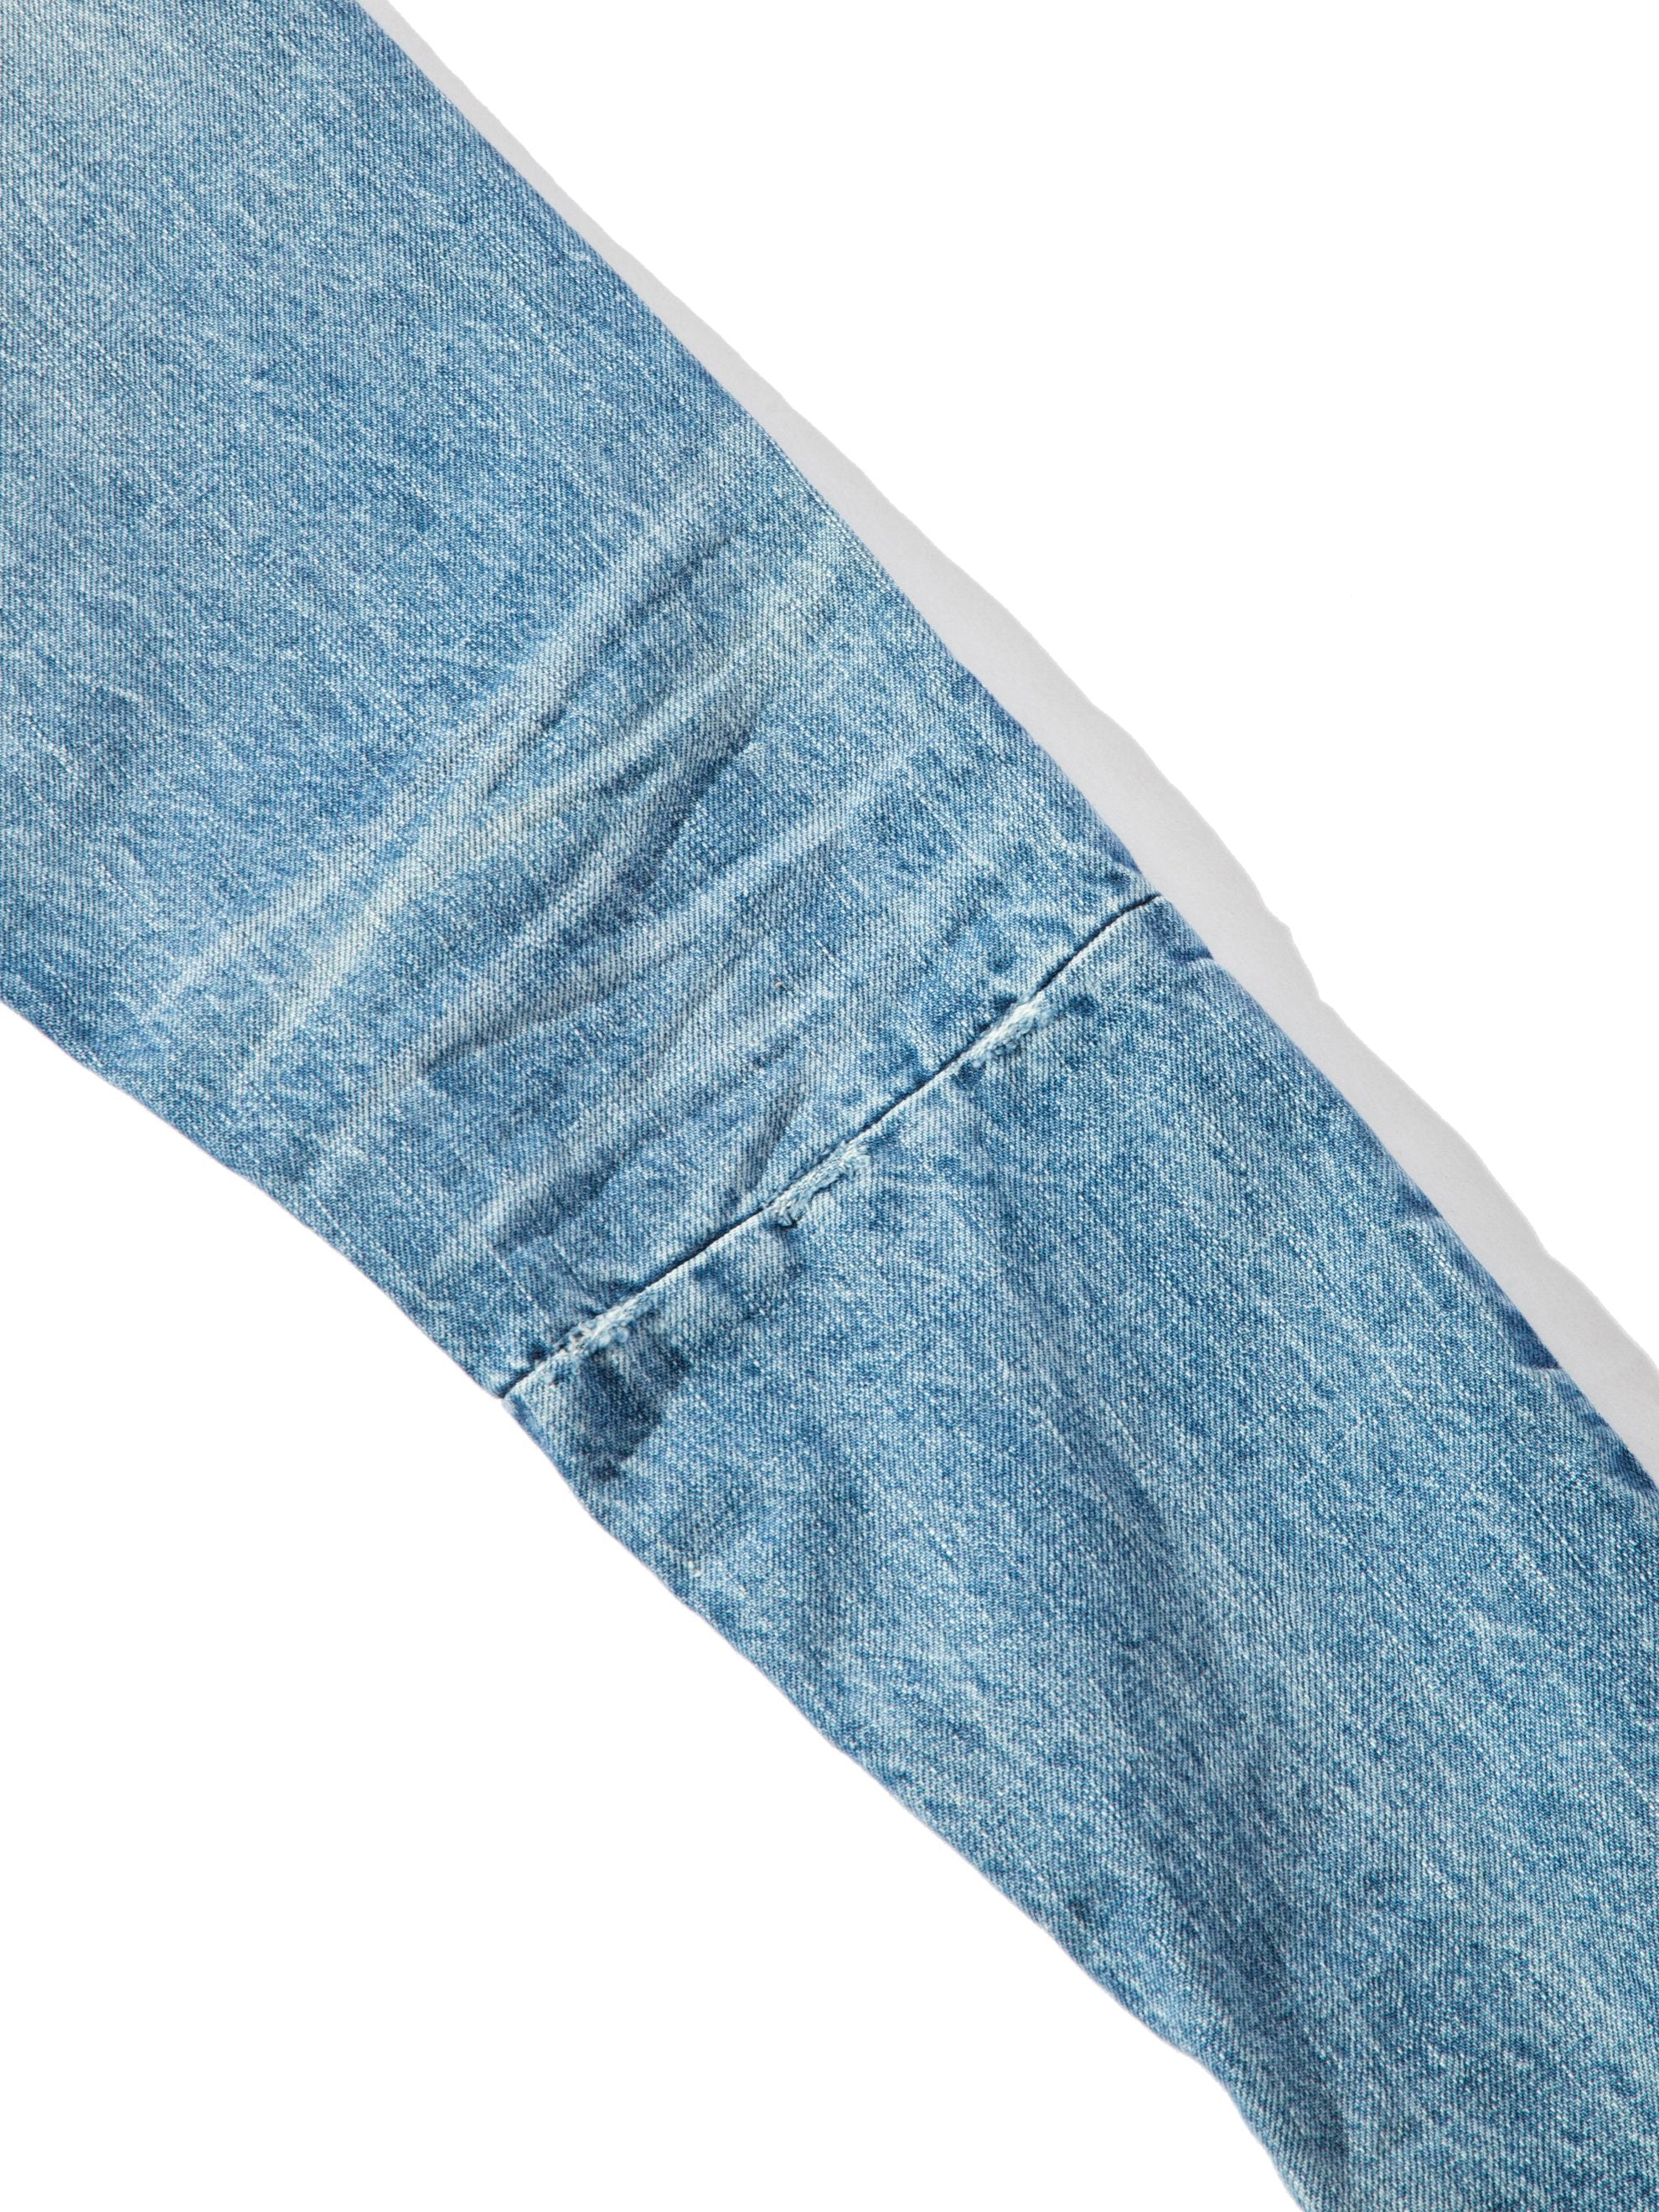 Vintage Indigo The Vintage Wash Selvedge Denim Jean 12